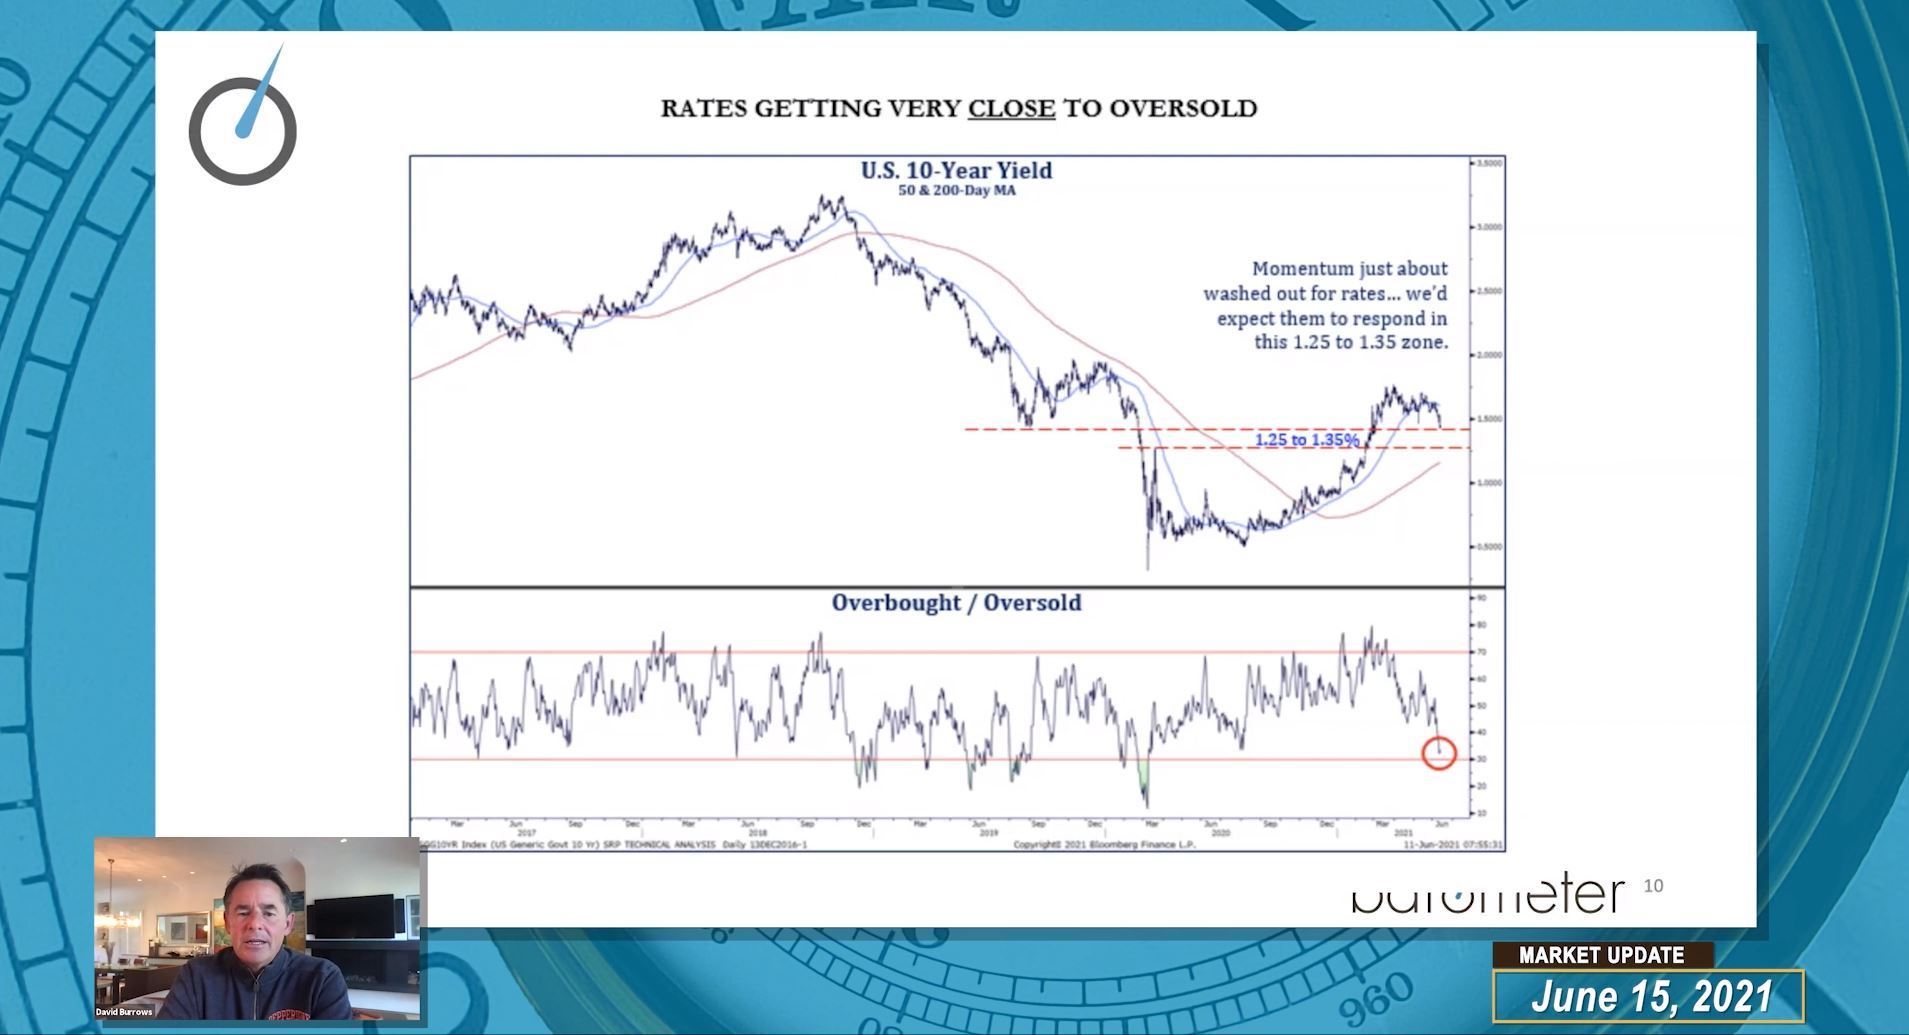 Weekly Barometer Readings (Video) – David Burrows Discusses Market Broadening Vs. A Rotation, Expanding Breadth, Leadership Themes, As Well As Q&A